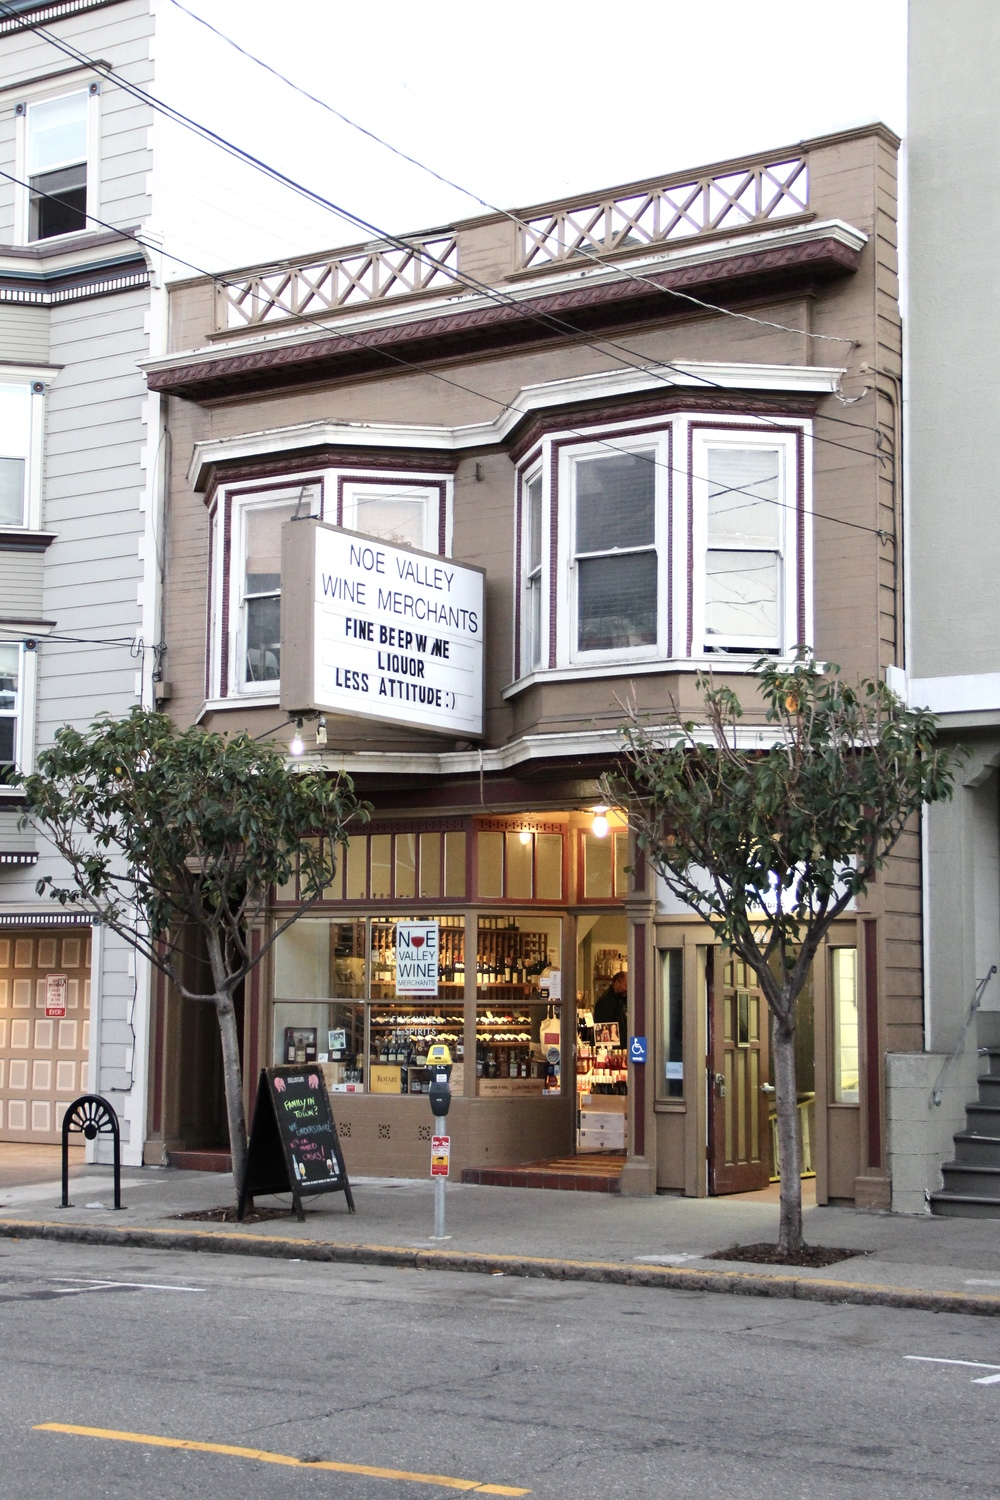 """Fine Beer Wine Liquor, Less Attitude :)"" Noe Valley, San Francisco 